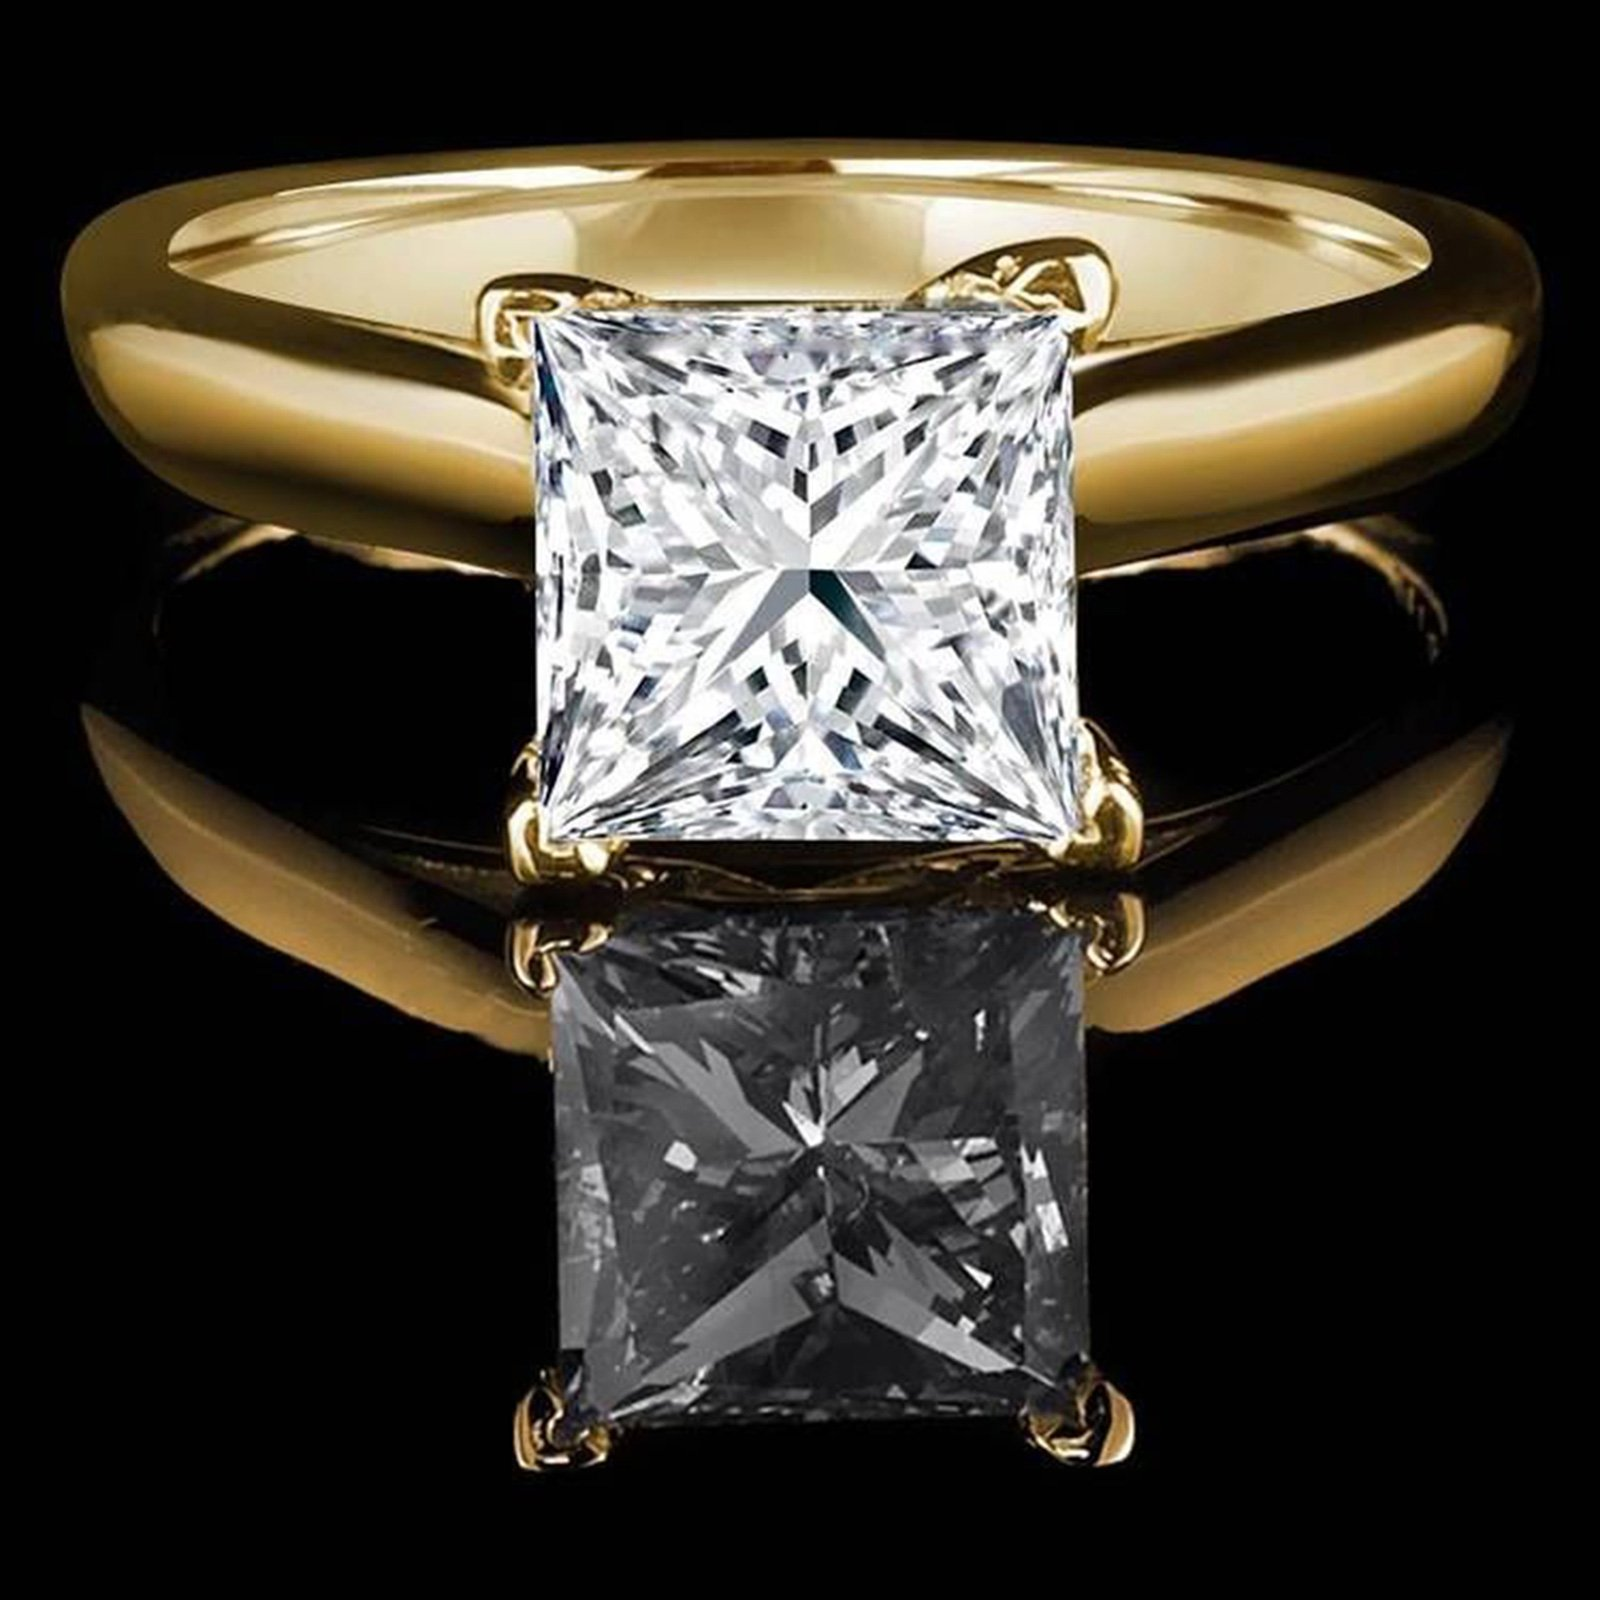 1.0 CT Princess brilliant Cut Simulated Diamond CZ Solitaire Bridal Promise Engagement Wedding Ring 14k Yellow Gold by Clara Pucci (Image #2)